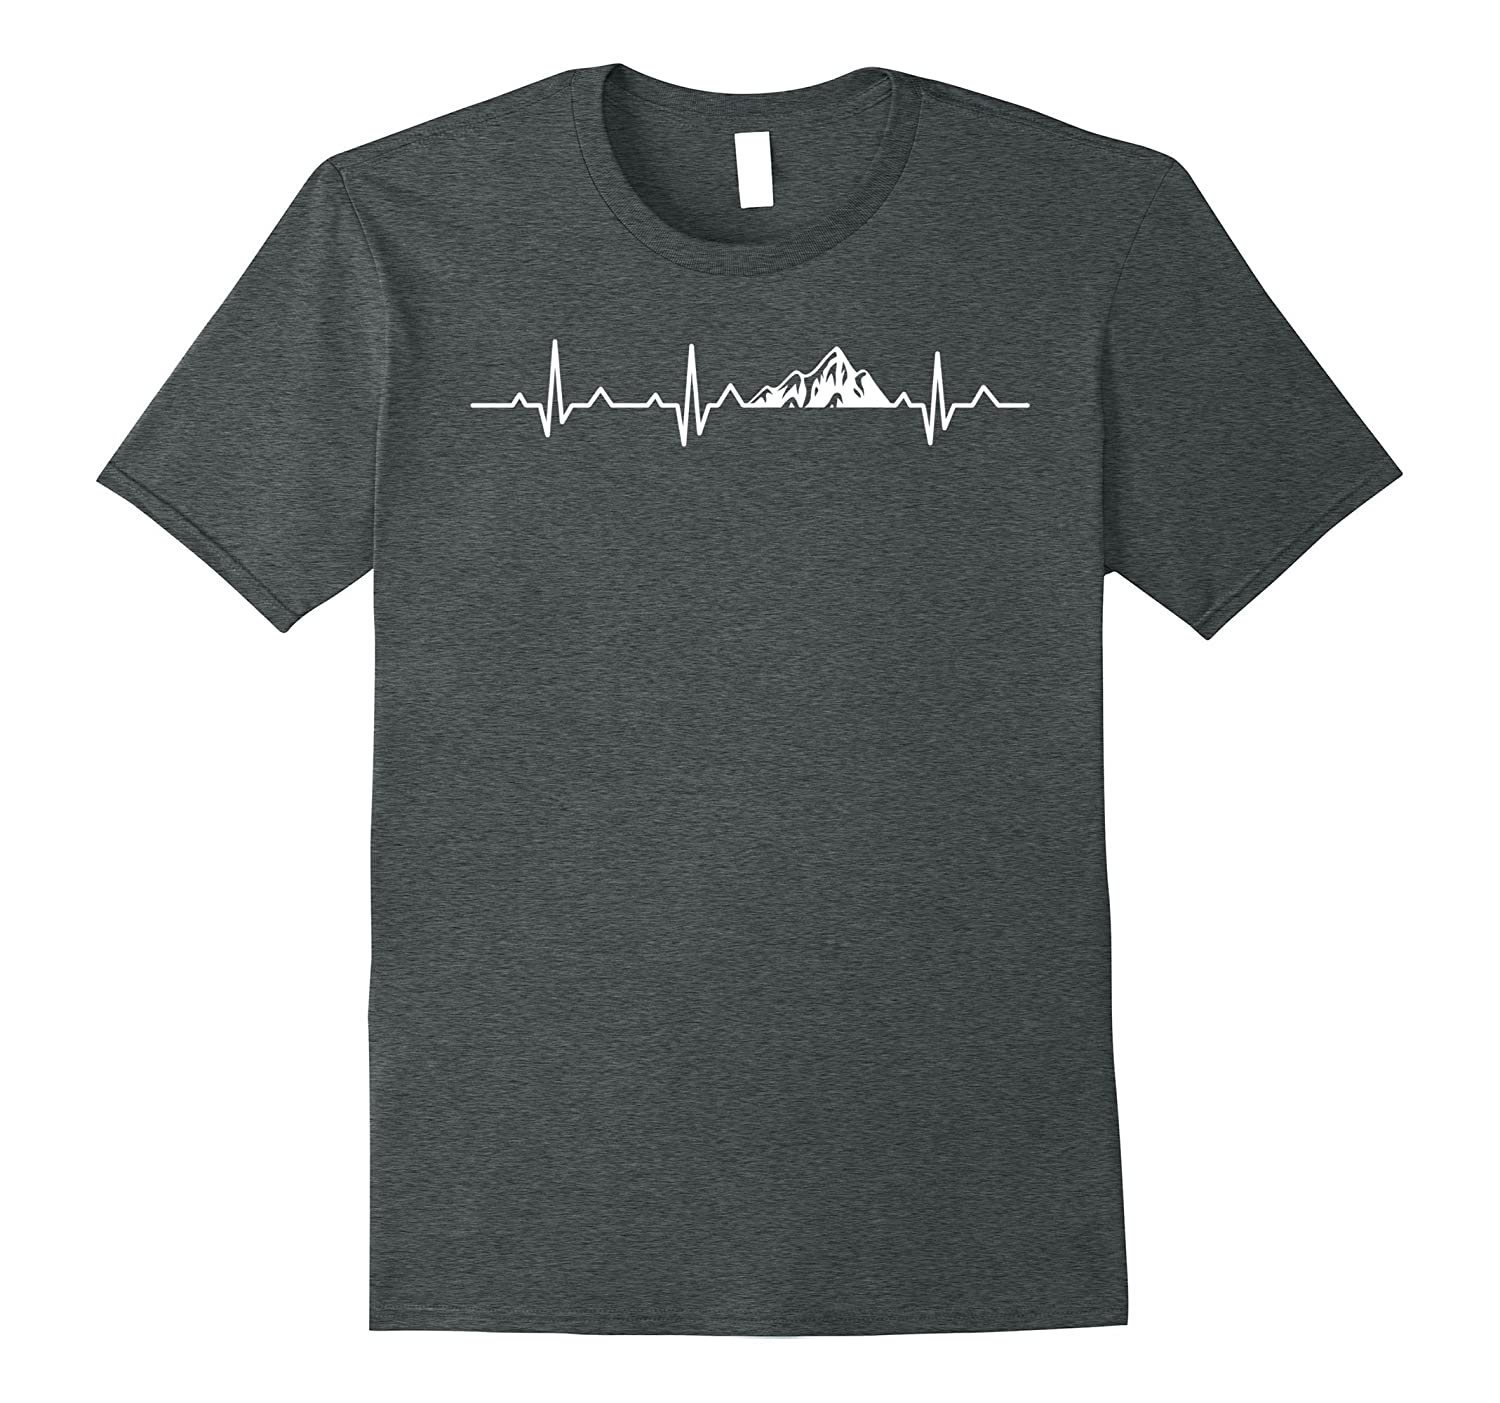 Mountain Heartbeat Graphic Outdoor Climber T-Shirt-Teevkd